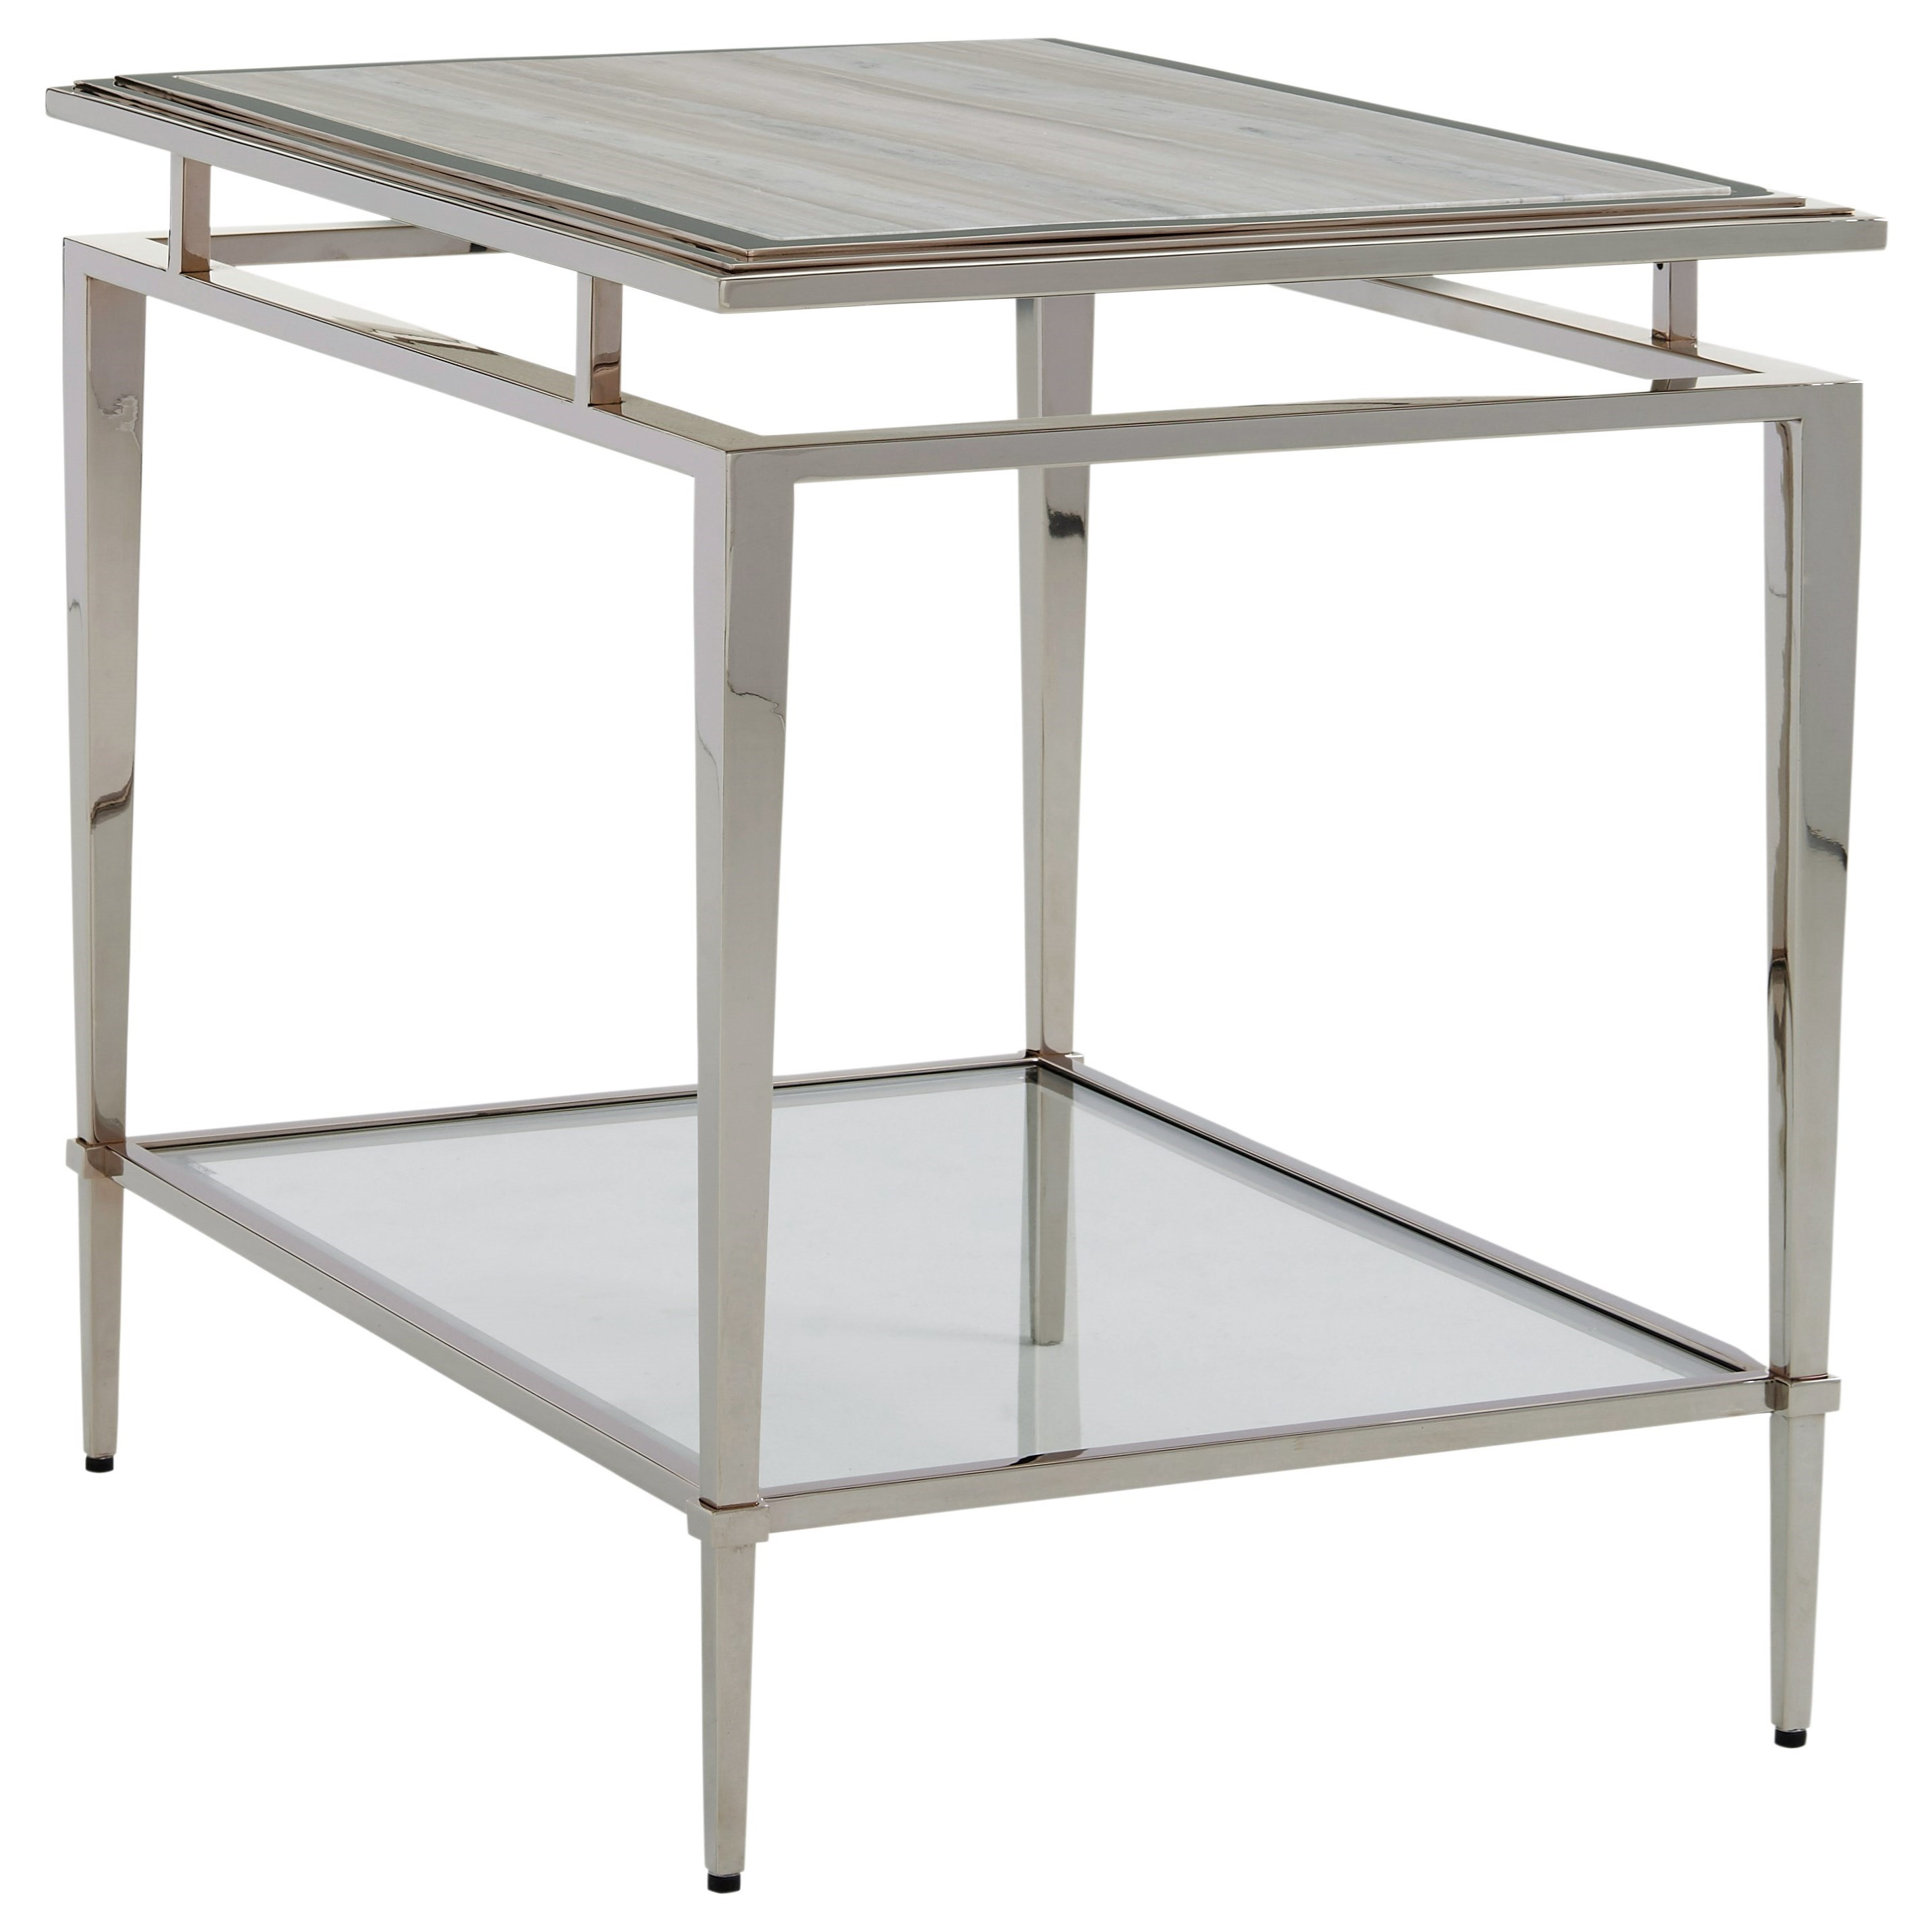 Ariana Athene Stainless End Table by Lexington at Baer's Furniture